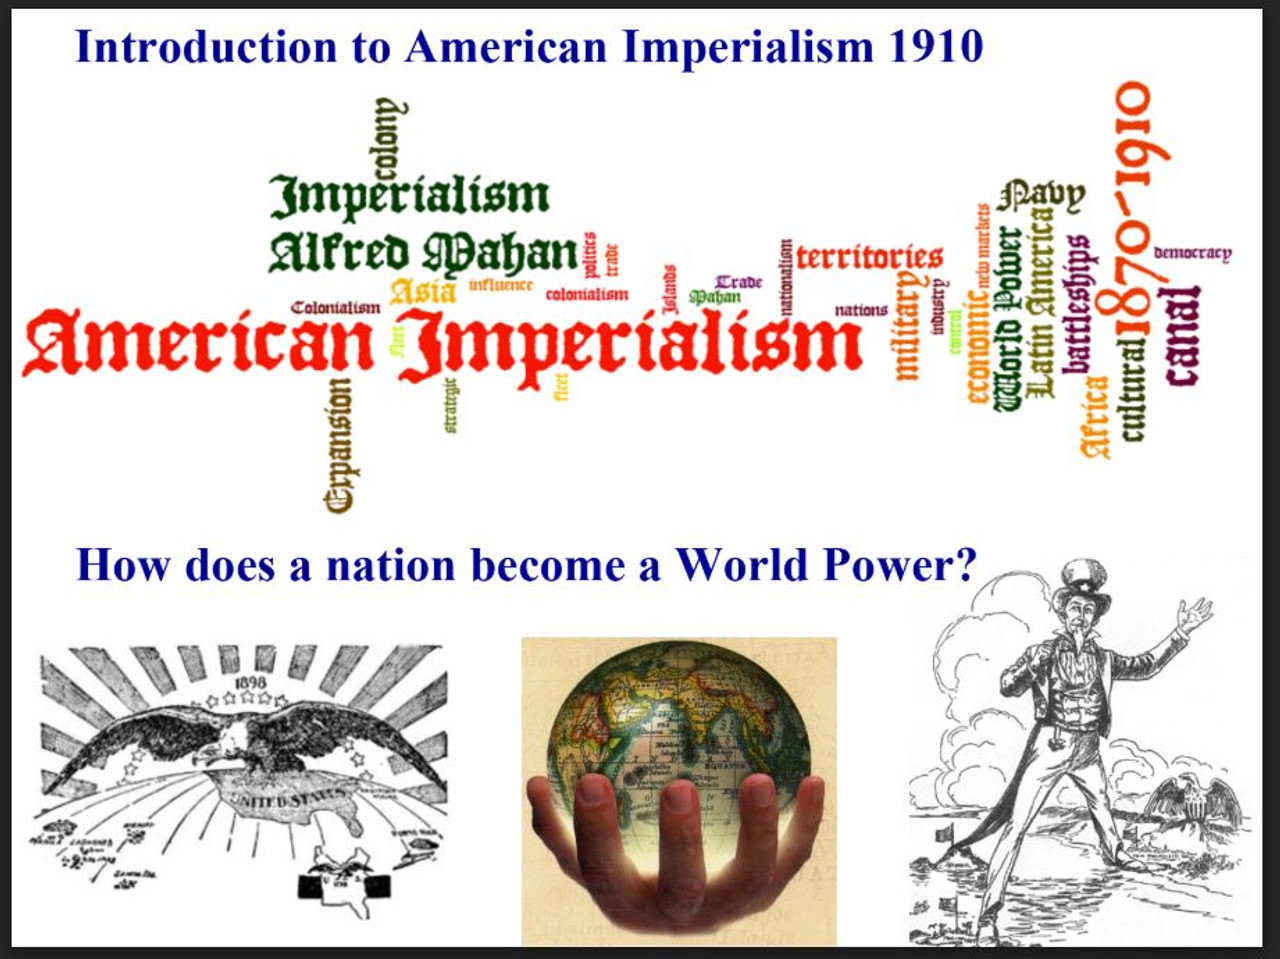 American Imperialism- An Introduction